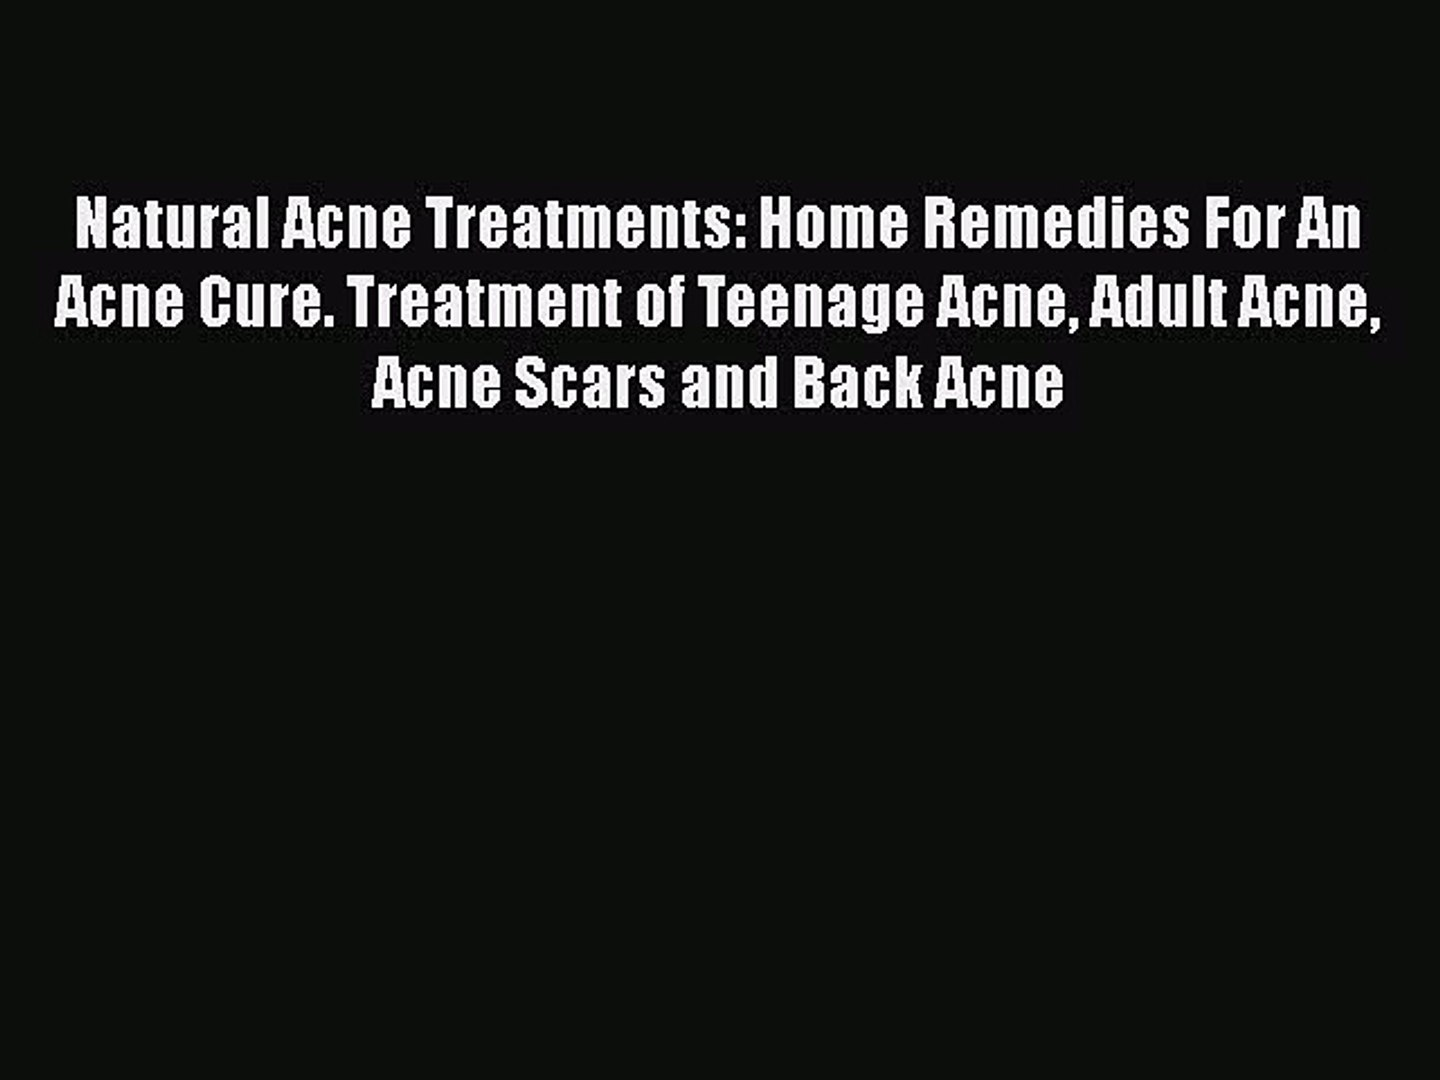 Read Natural Acne Treatments Home Remedies For An Acne Cure